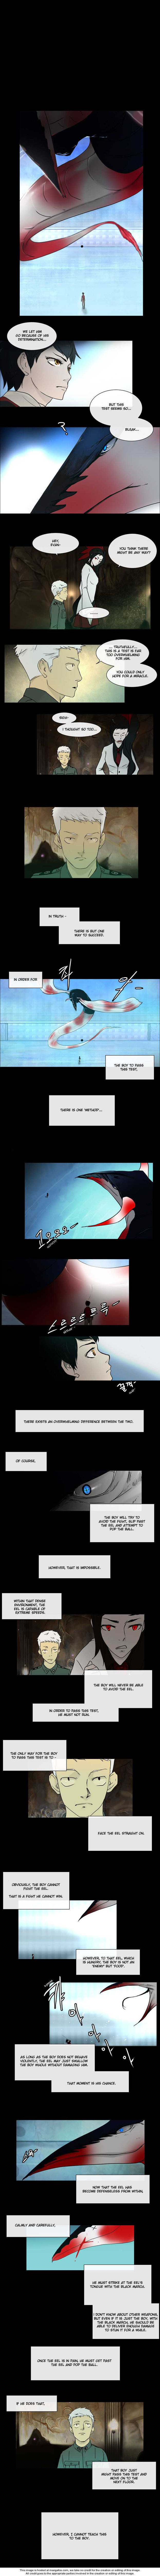 Tower of God 3 Page 3